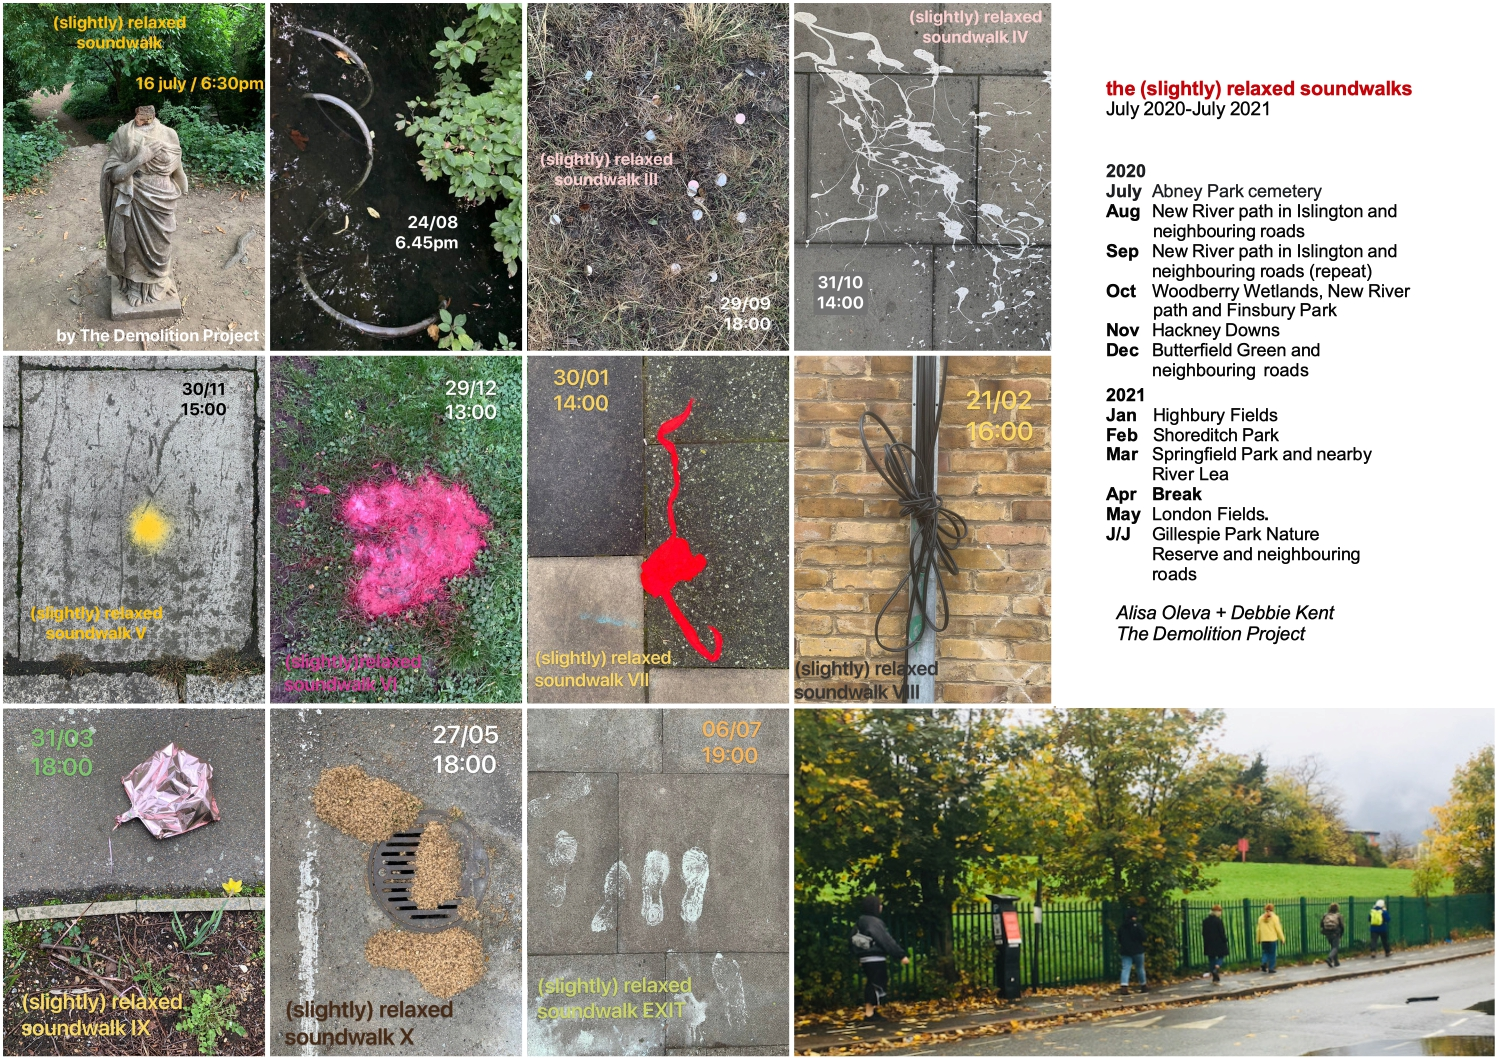 A group of photographs of details of urban streets, used to promote the soundwalks